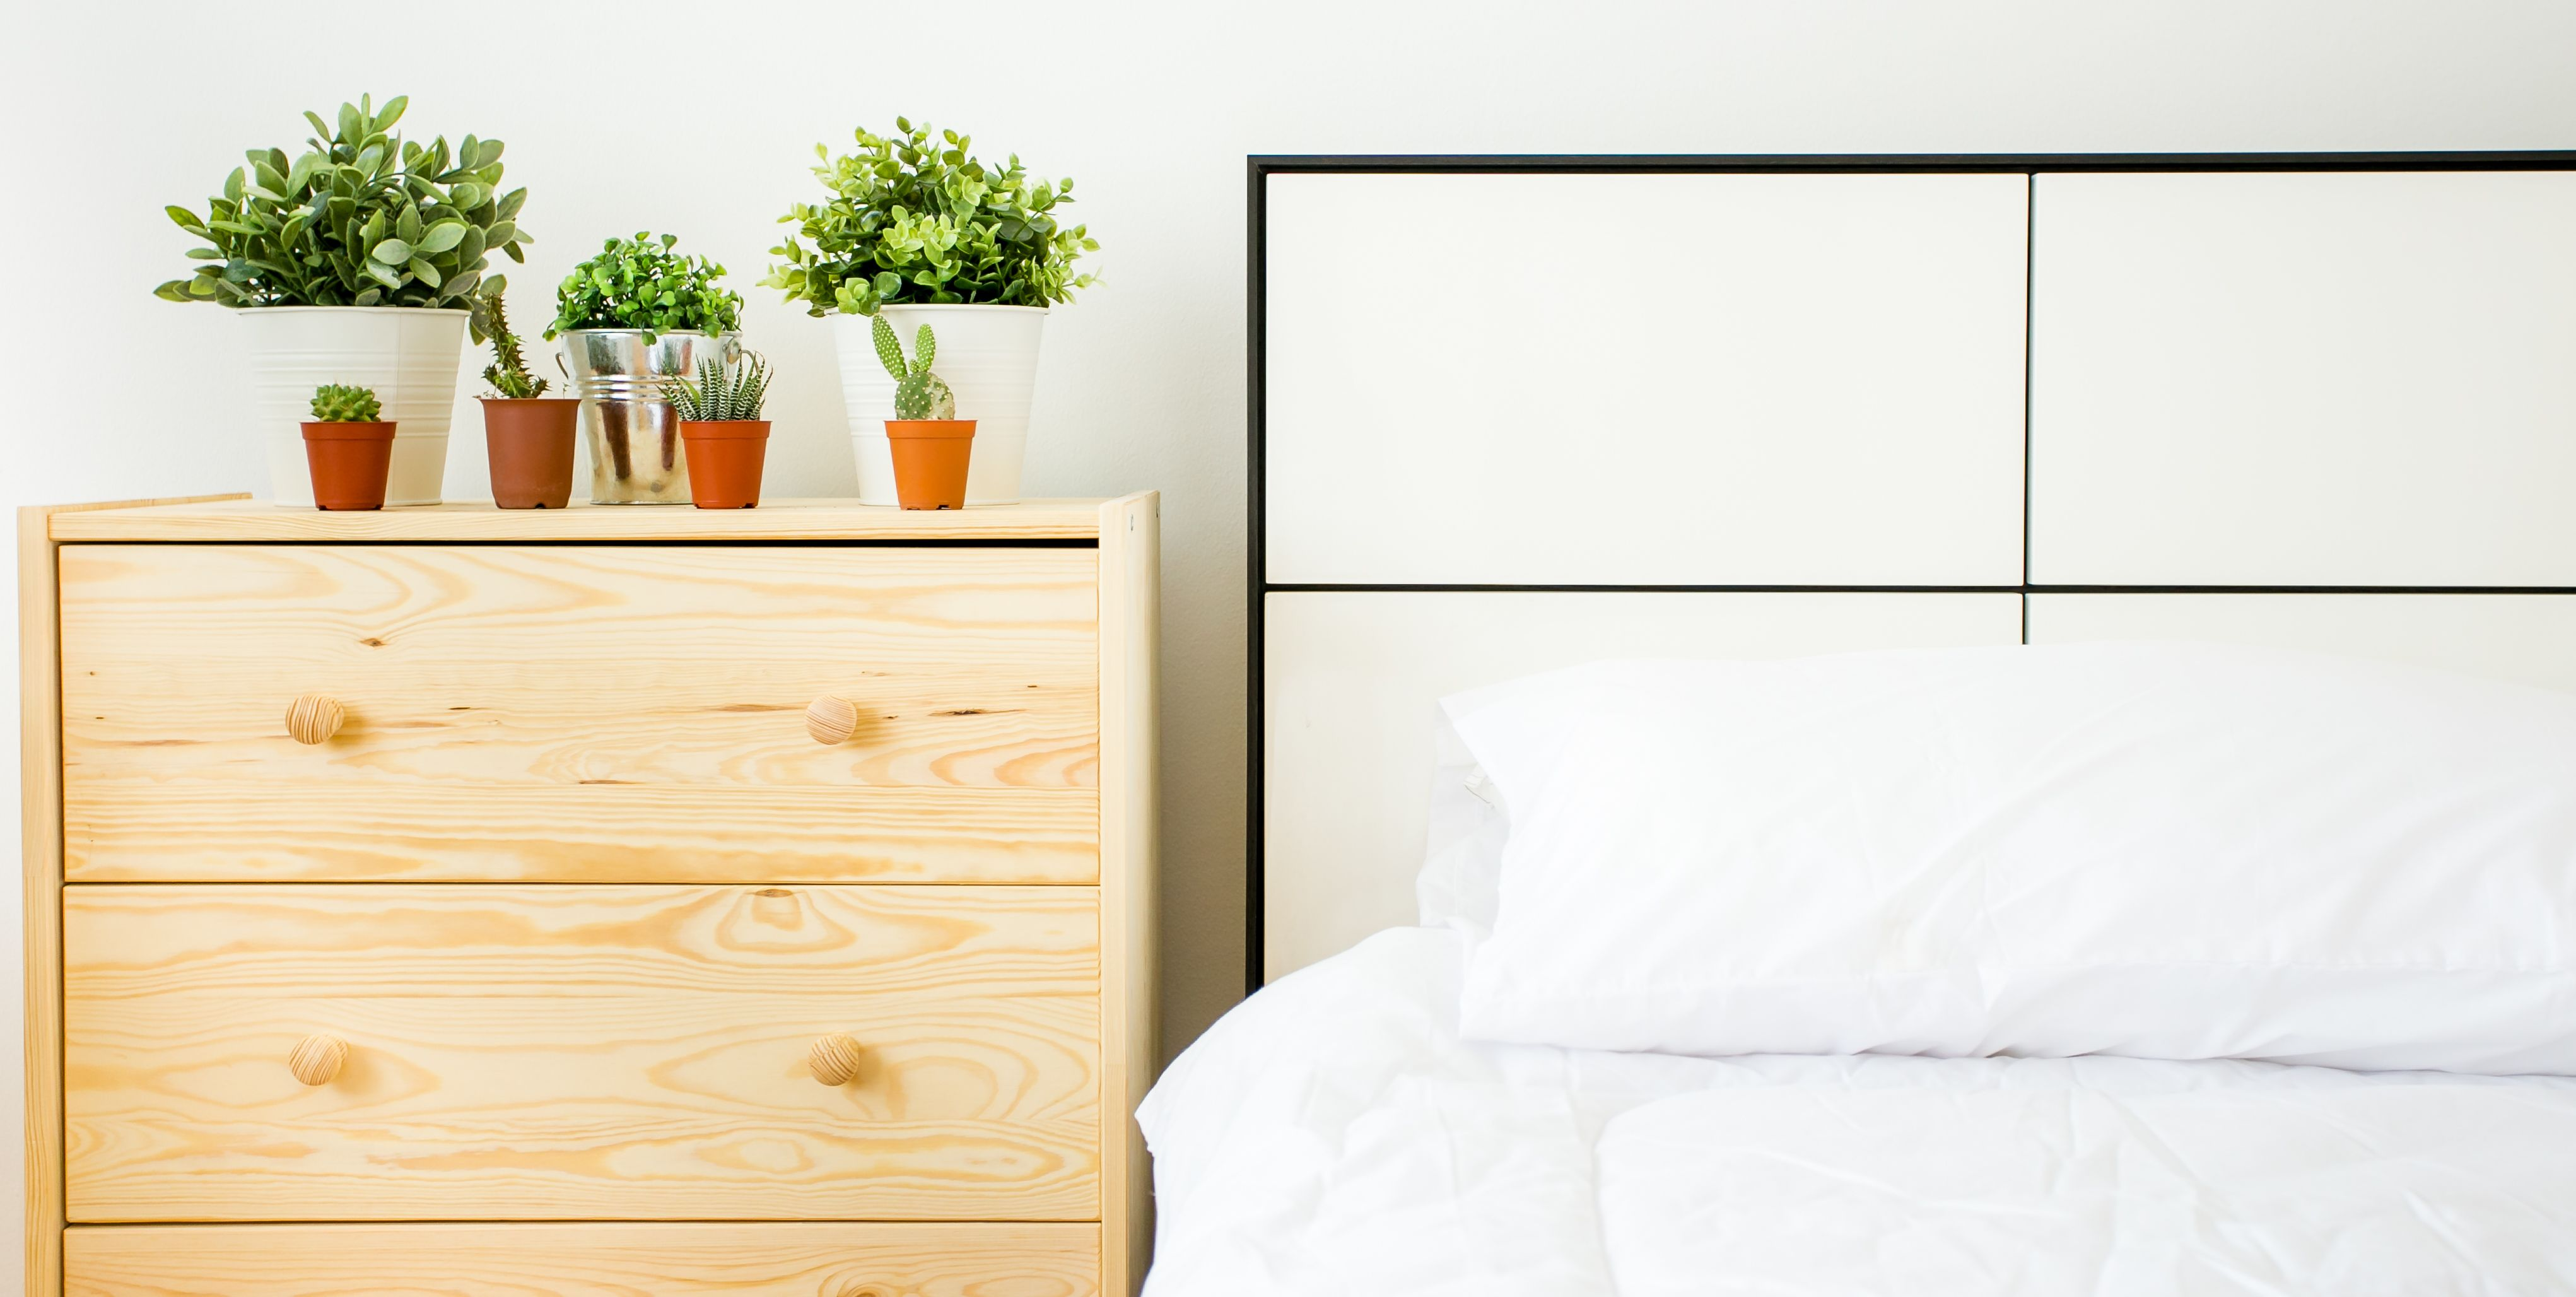 10 Plants That'll Purify Your Bedroom Air and Help You Sleep Better